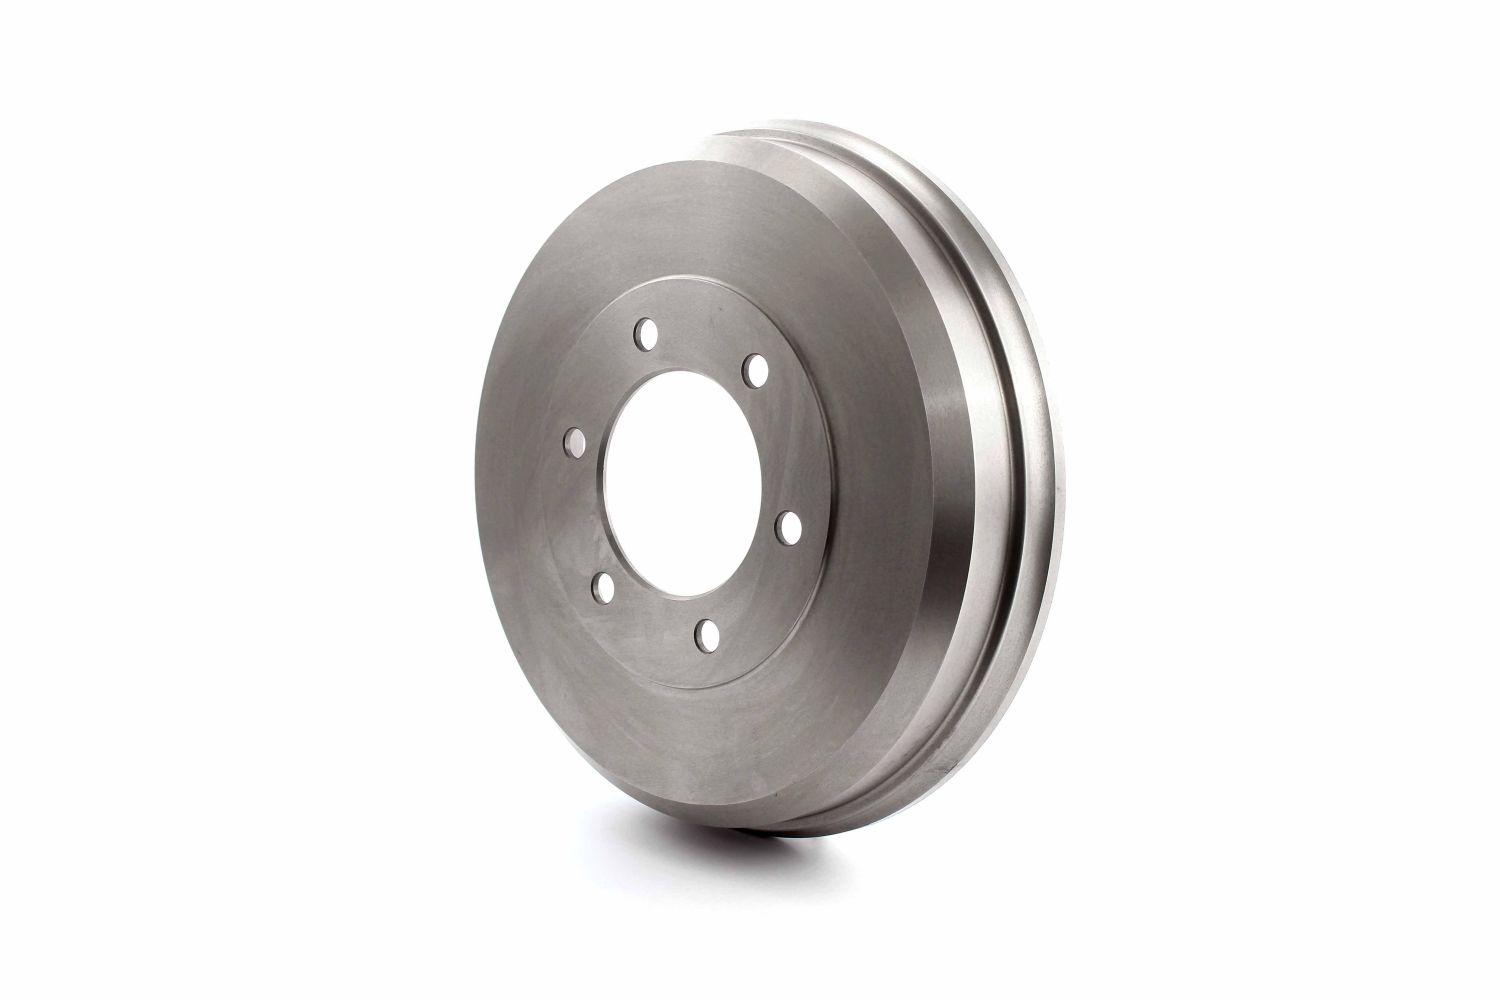 For 2010 GMC Canyon SLE Premium Quality Rear Brake Drums and Drum Brake Shoes Inroble Two Years Warranty